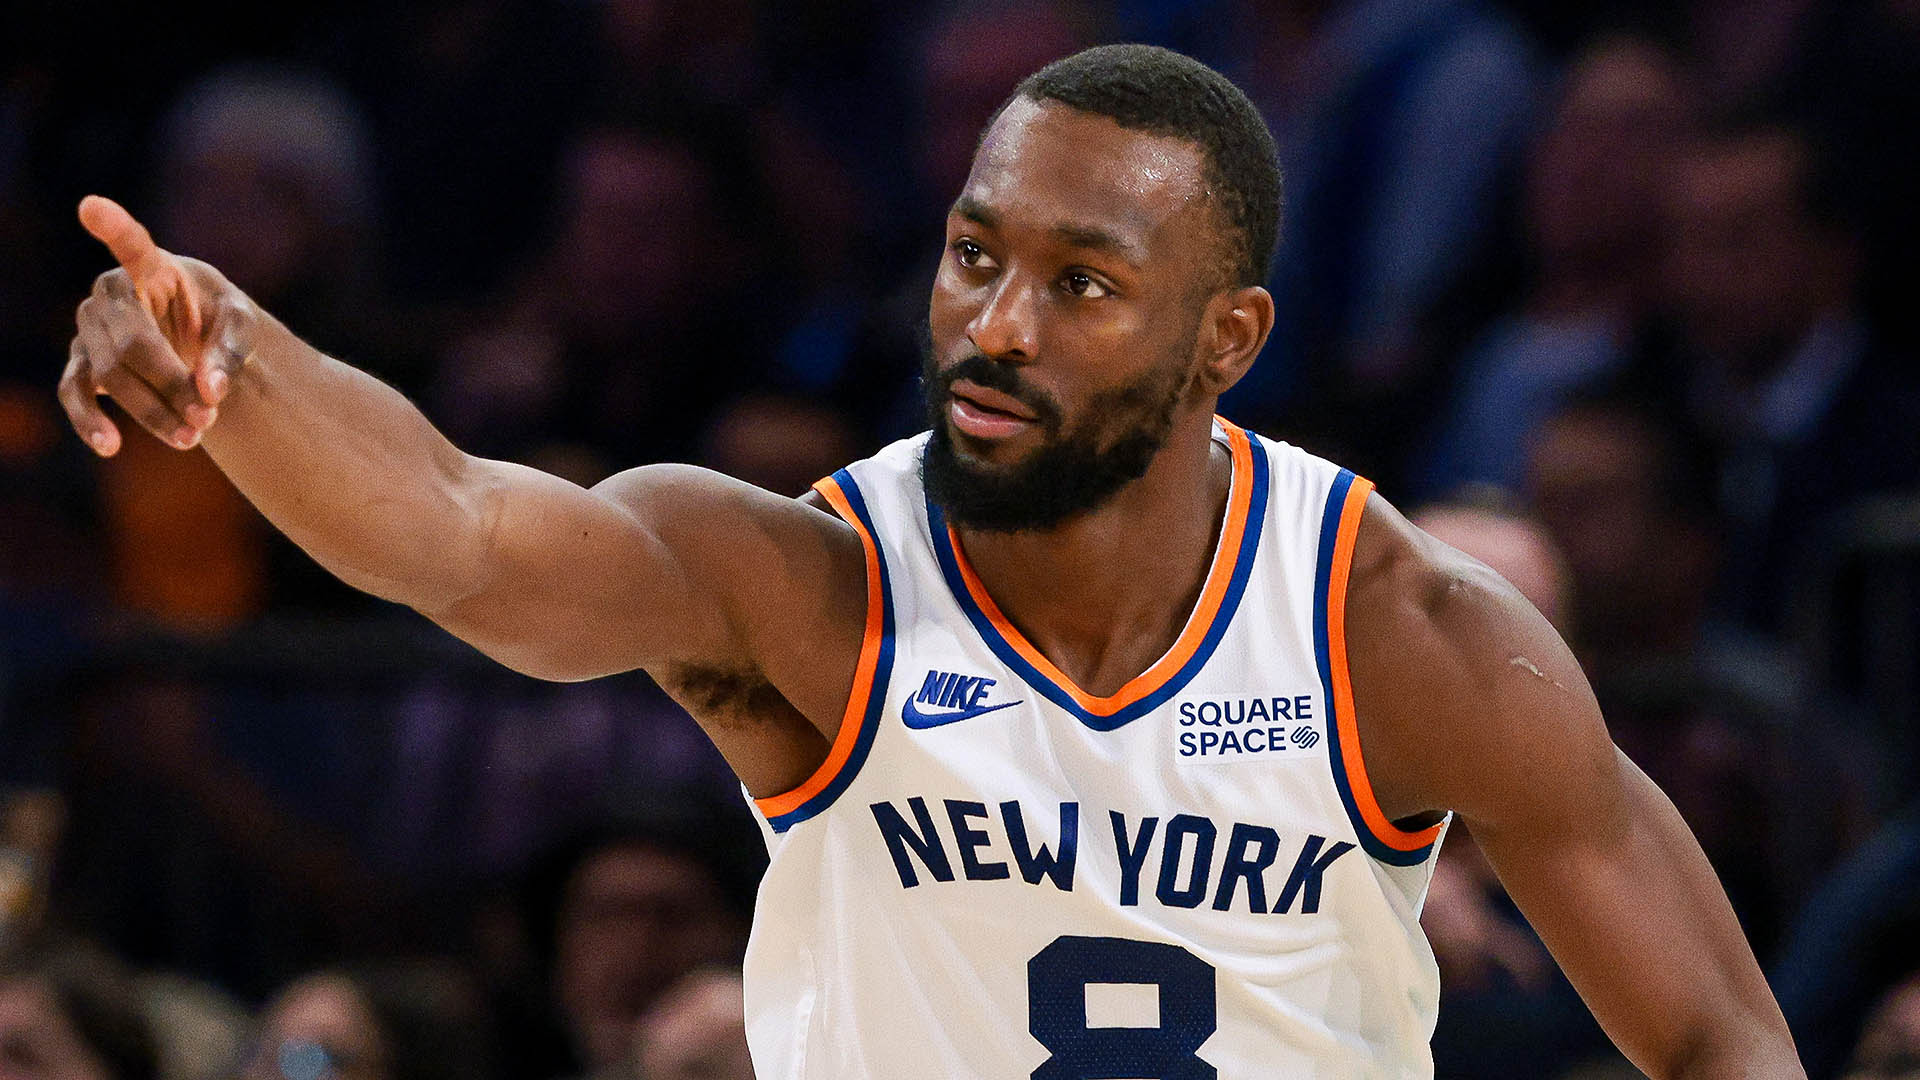 Full Focus: Walker shows out as Knicks blast 76ers